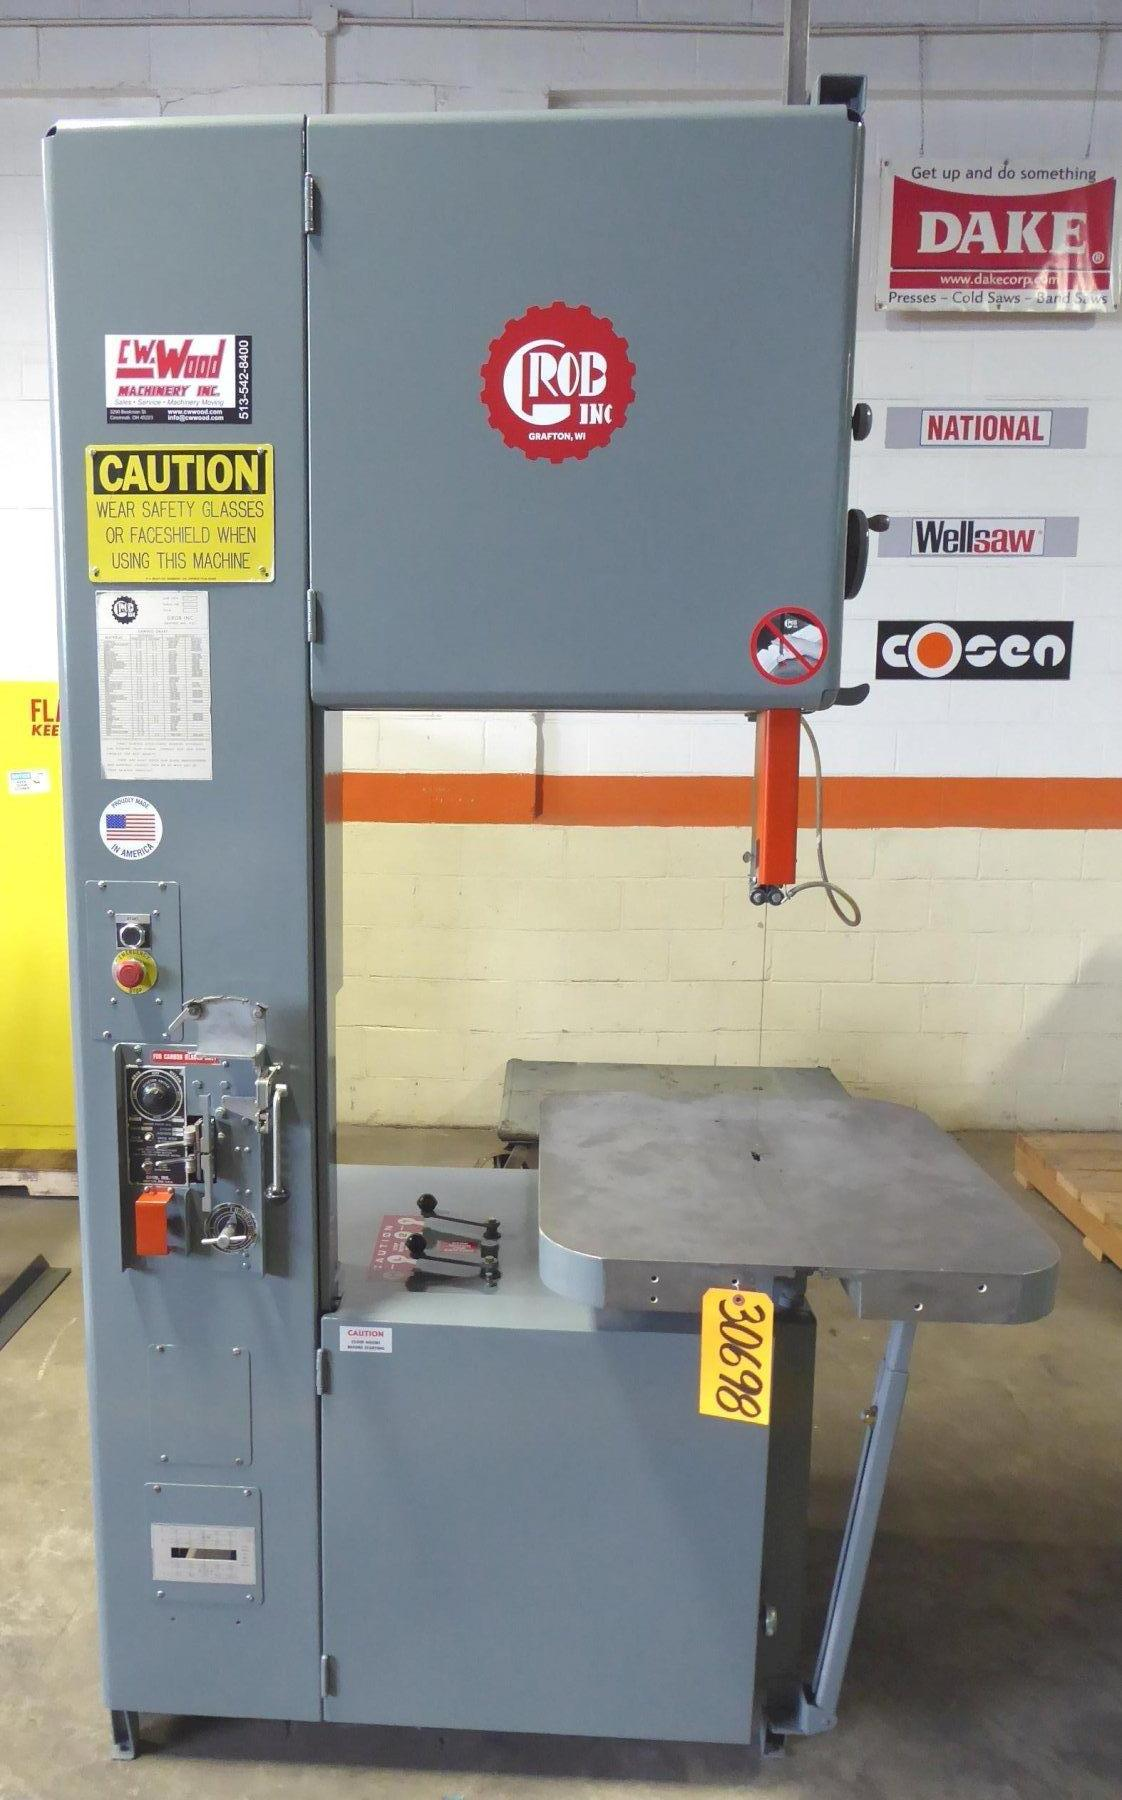 24″ Grob Vertical Band Saw No. 4V-24, 40-5000 FPM, 28″ x 24″ Air Feed Tbl., 12″ Under Guide, 1999